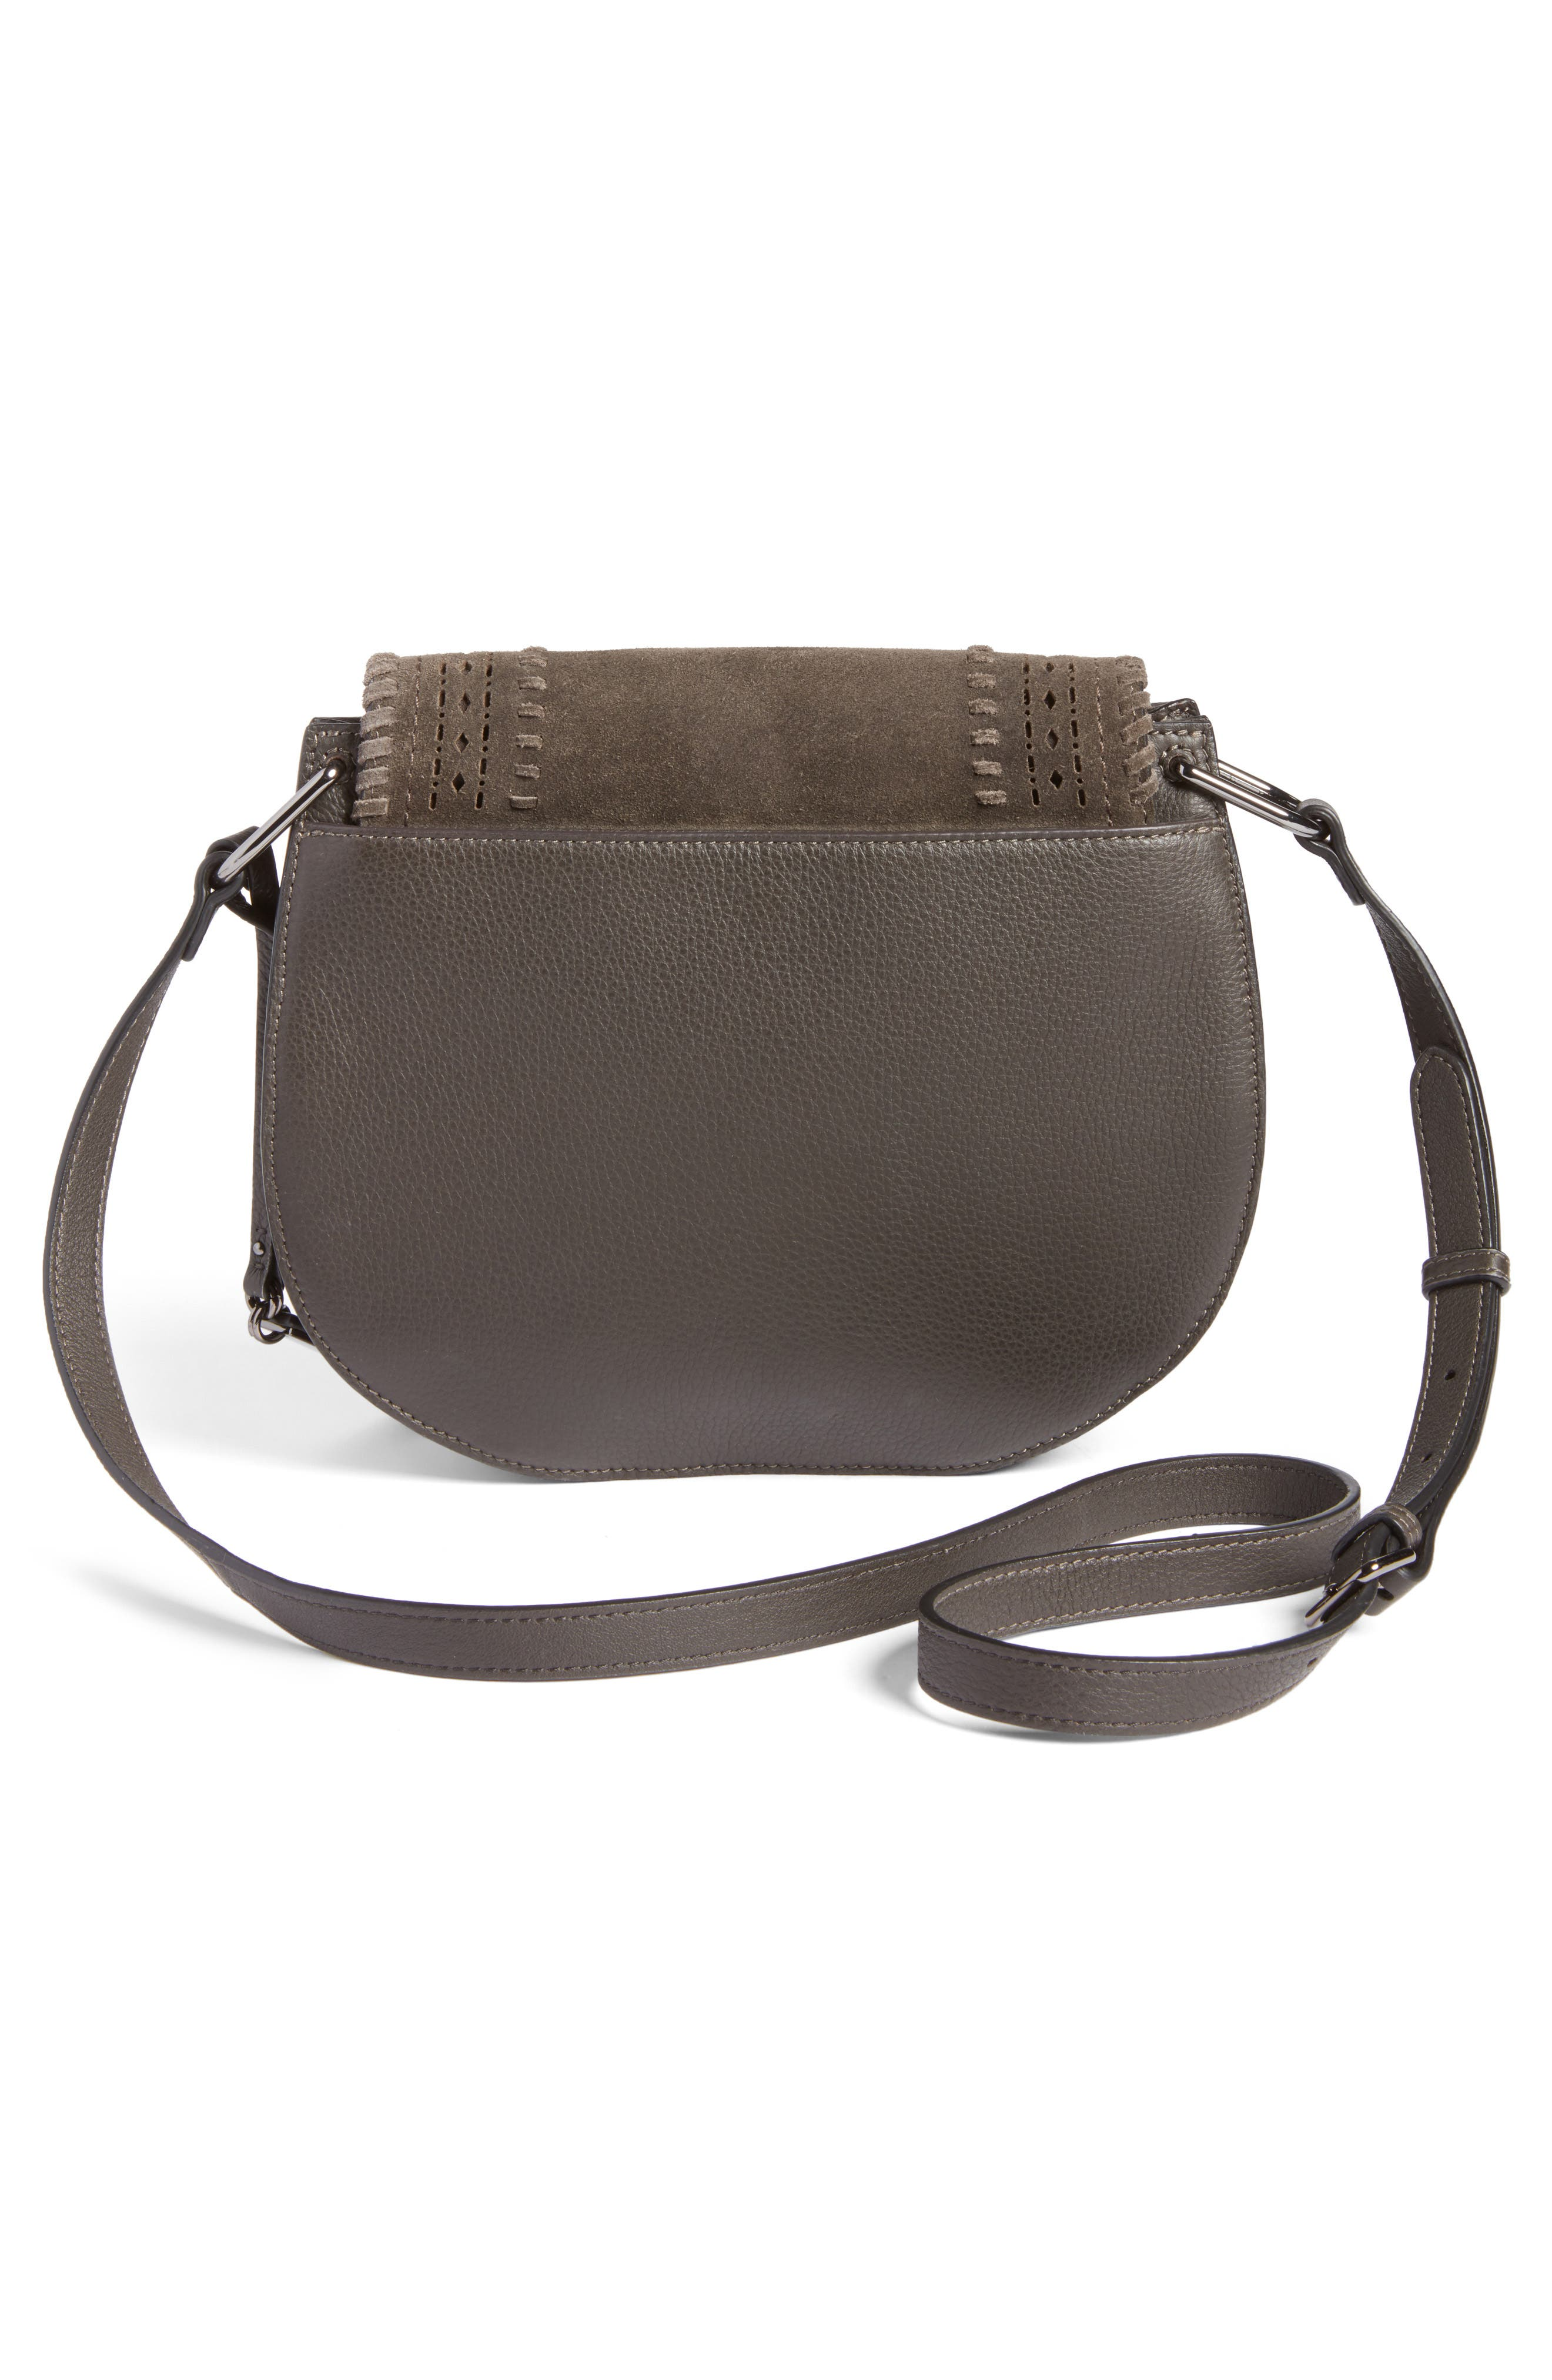 Alternate Image 3  - Vince Camuto Kirie Suede & Leather Crossbody Saddle Bag (Nordstrom Exclusive)